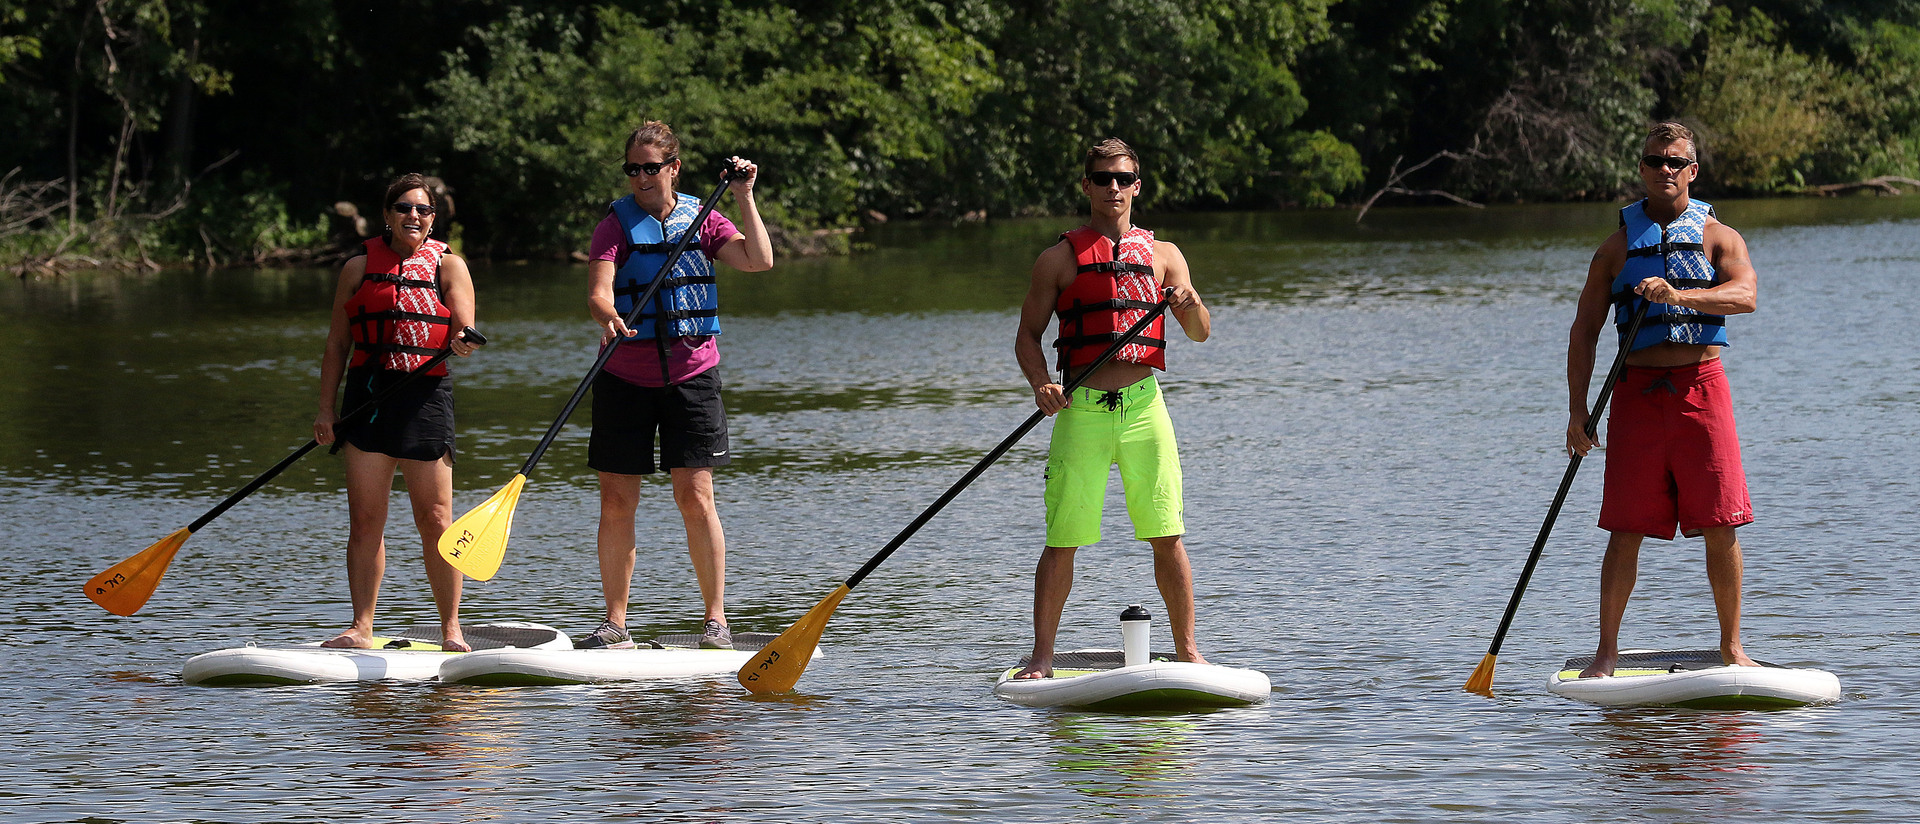 University Recreation paddleboarding class